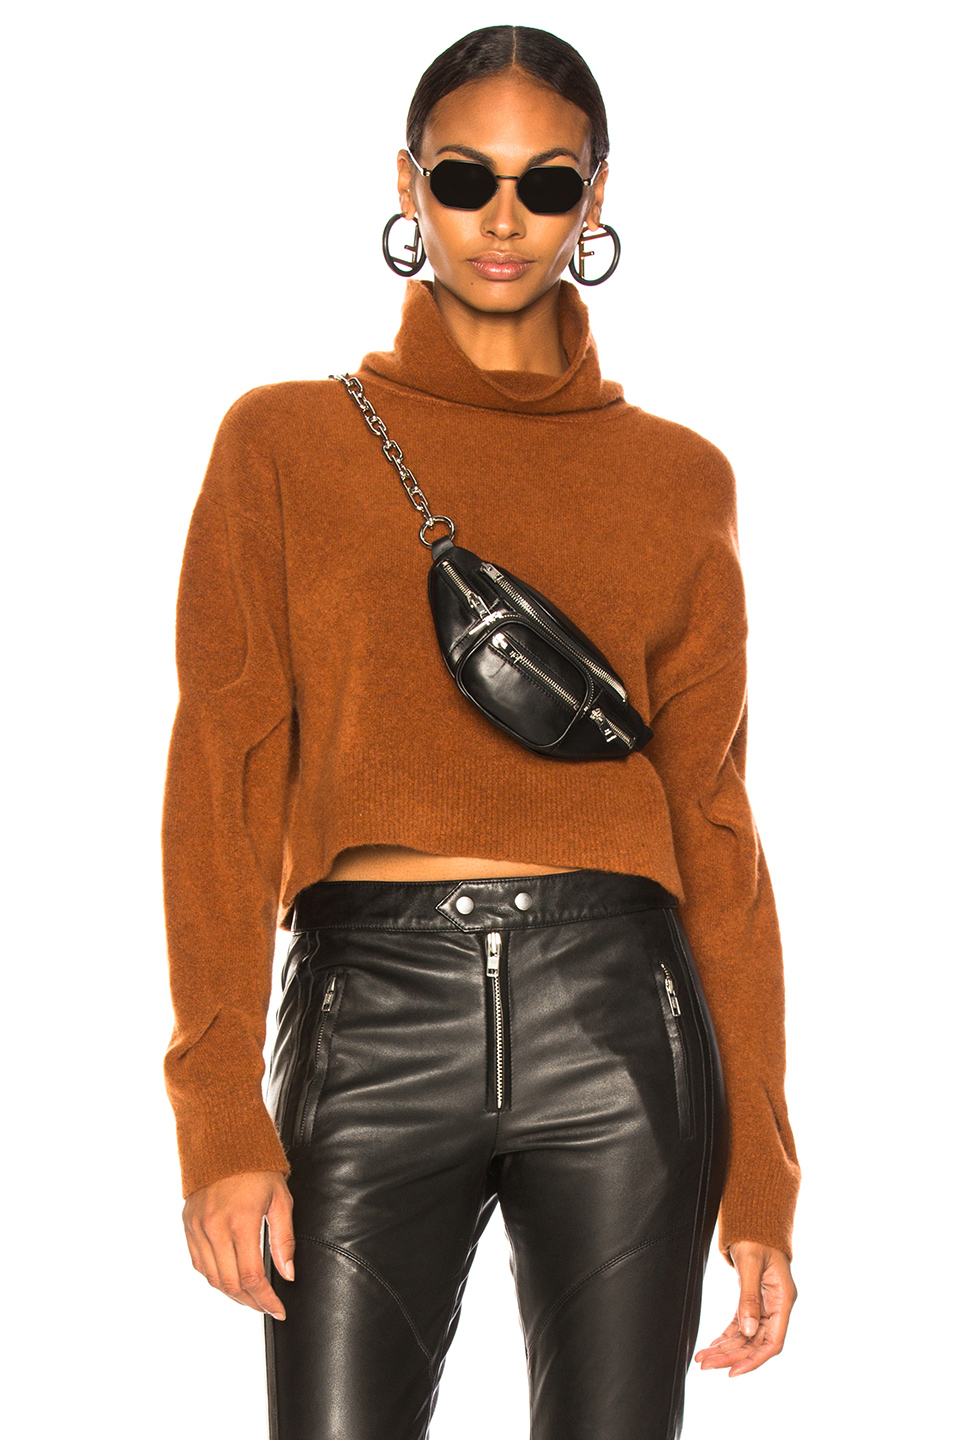 Chunky Cropped Sweater, T by Alexander Wang